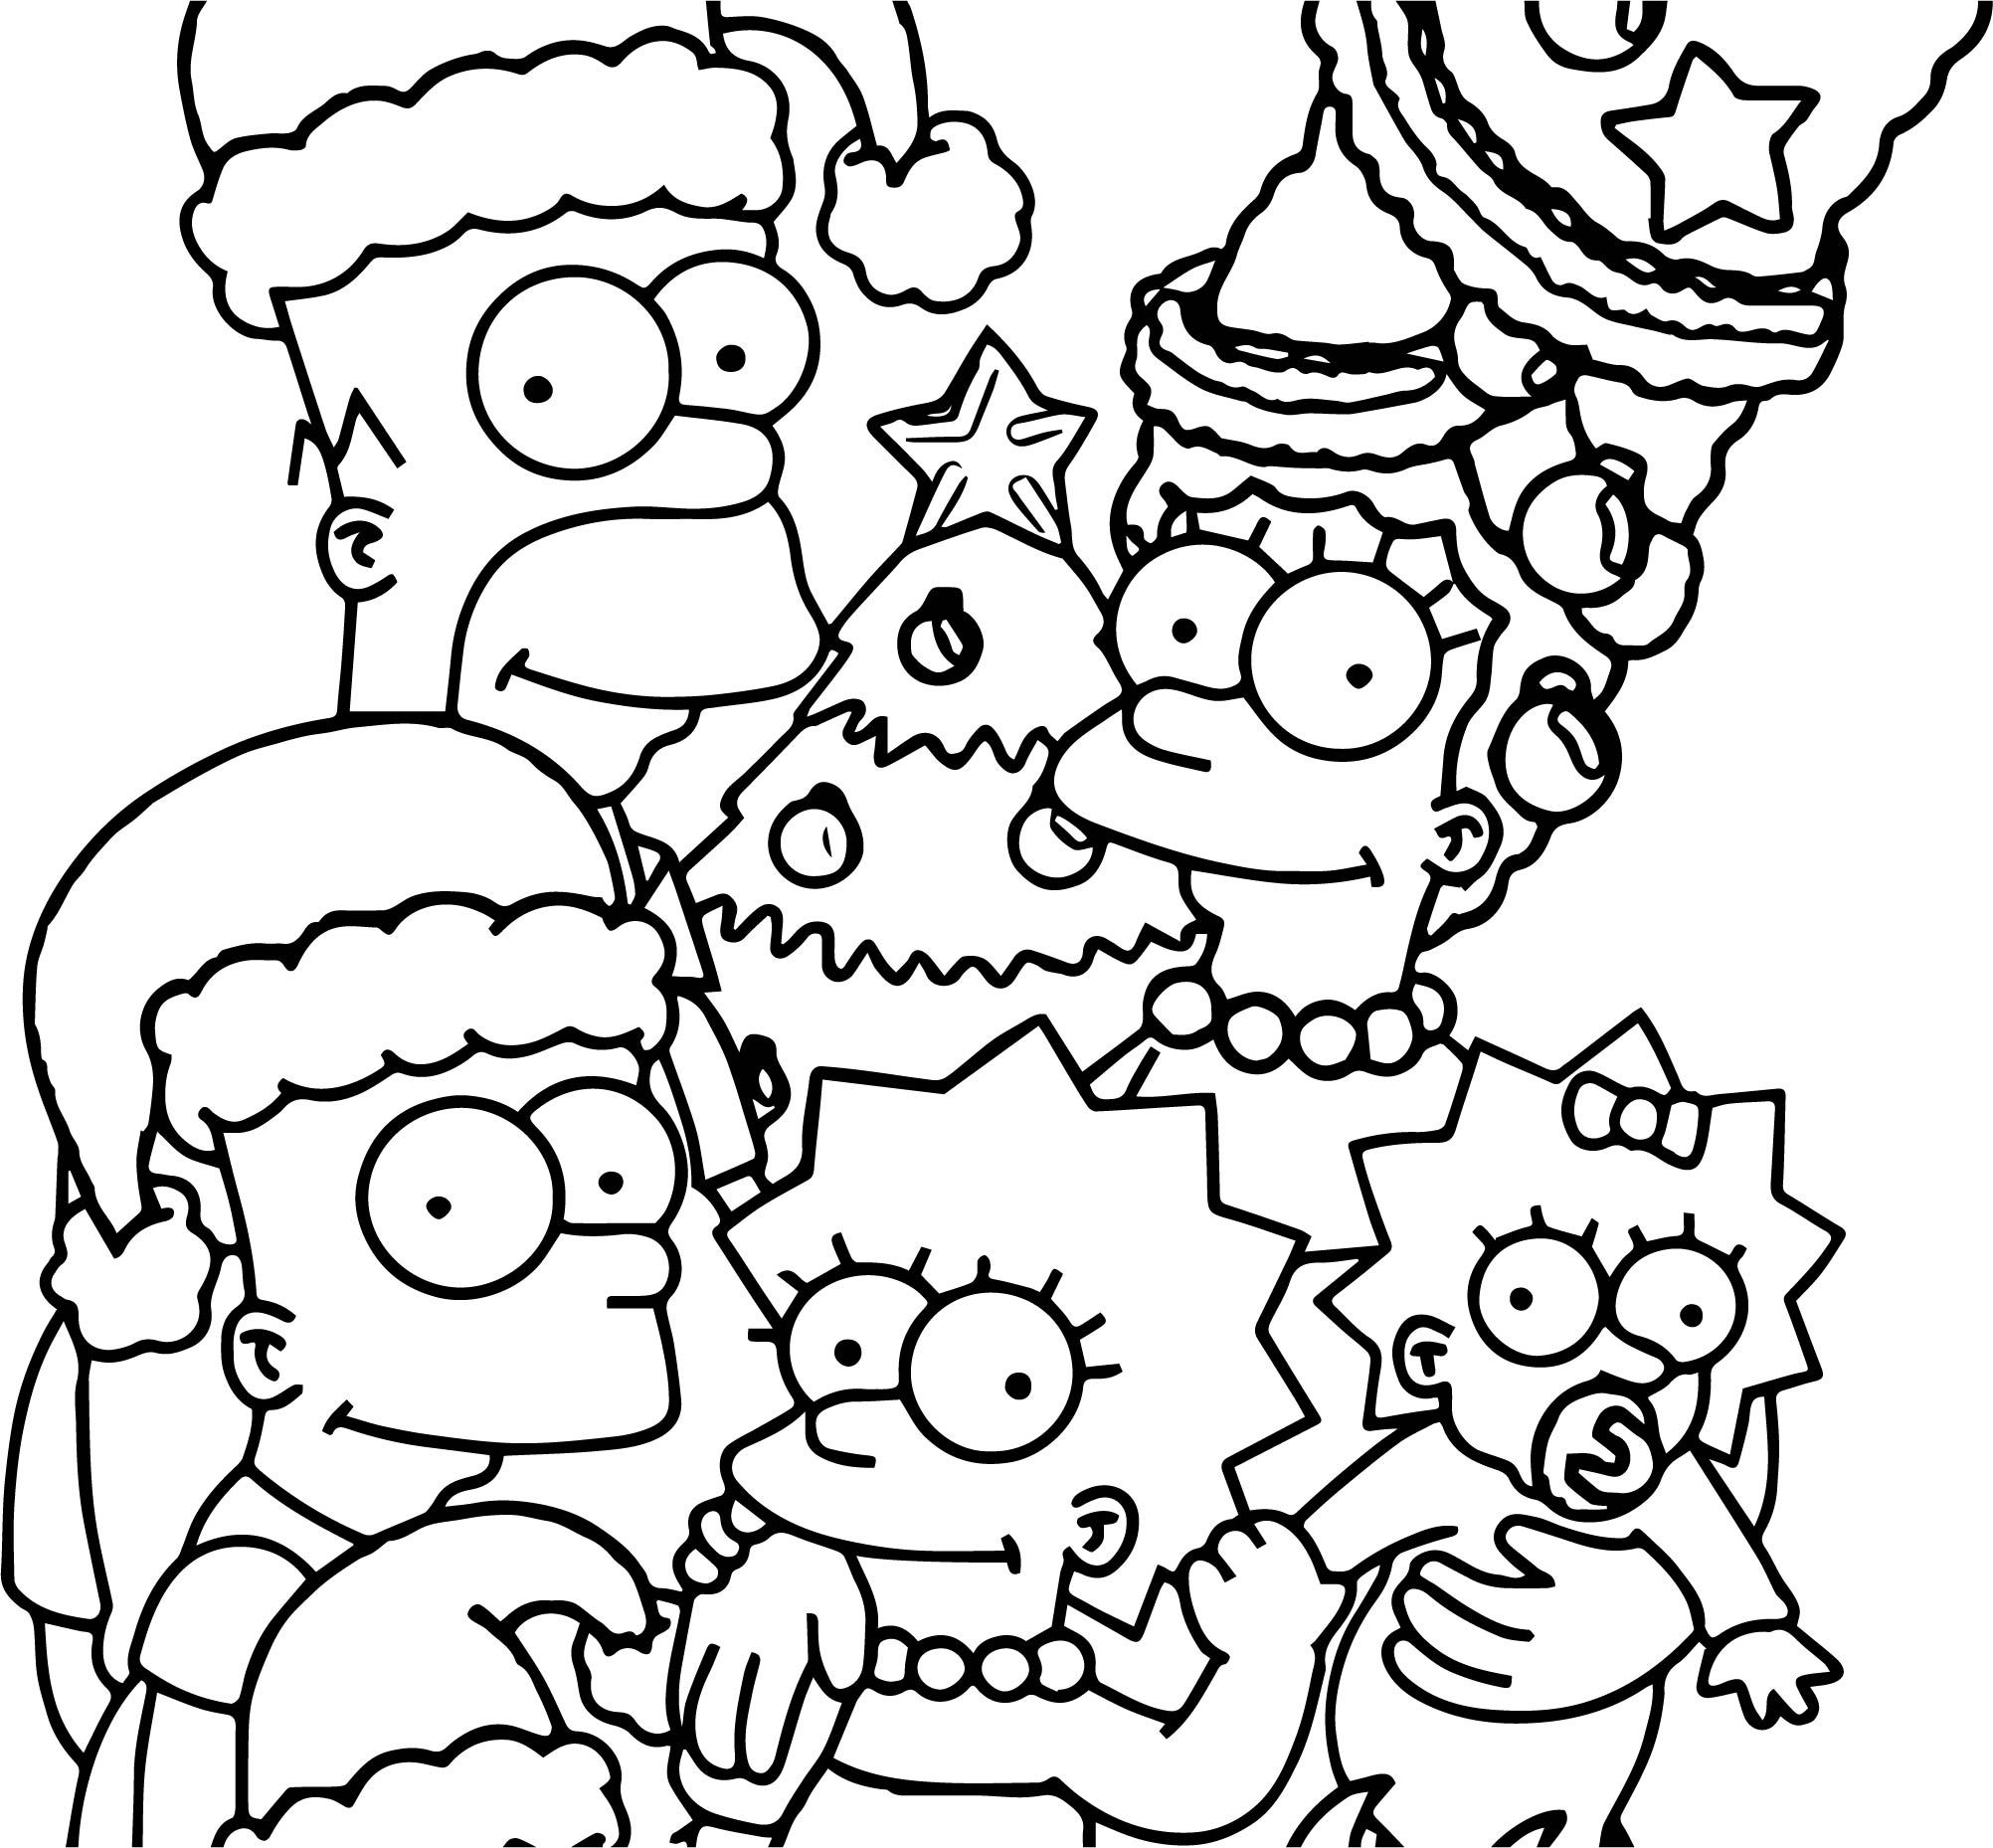 Cool The Simpsons Wallpaper Christmas Coloring Page Christmas Coloring Pages Coloring Pages Christmas Colors